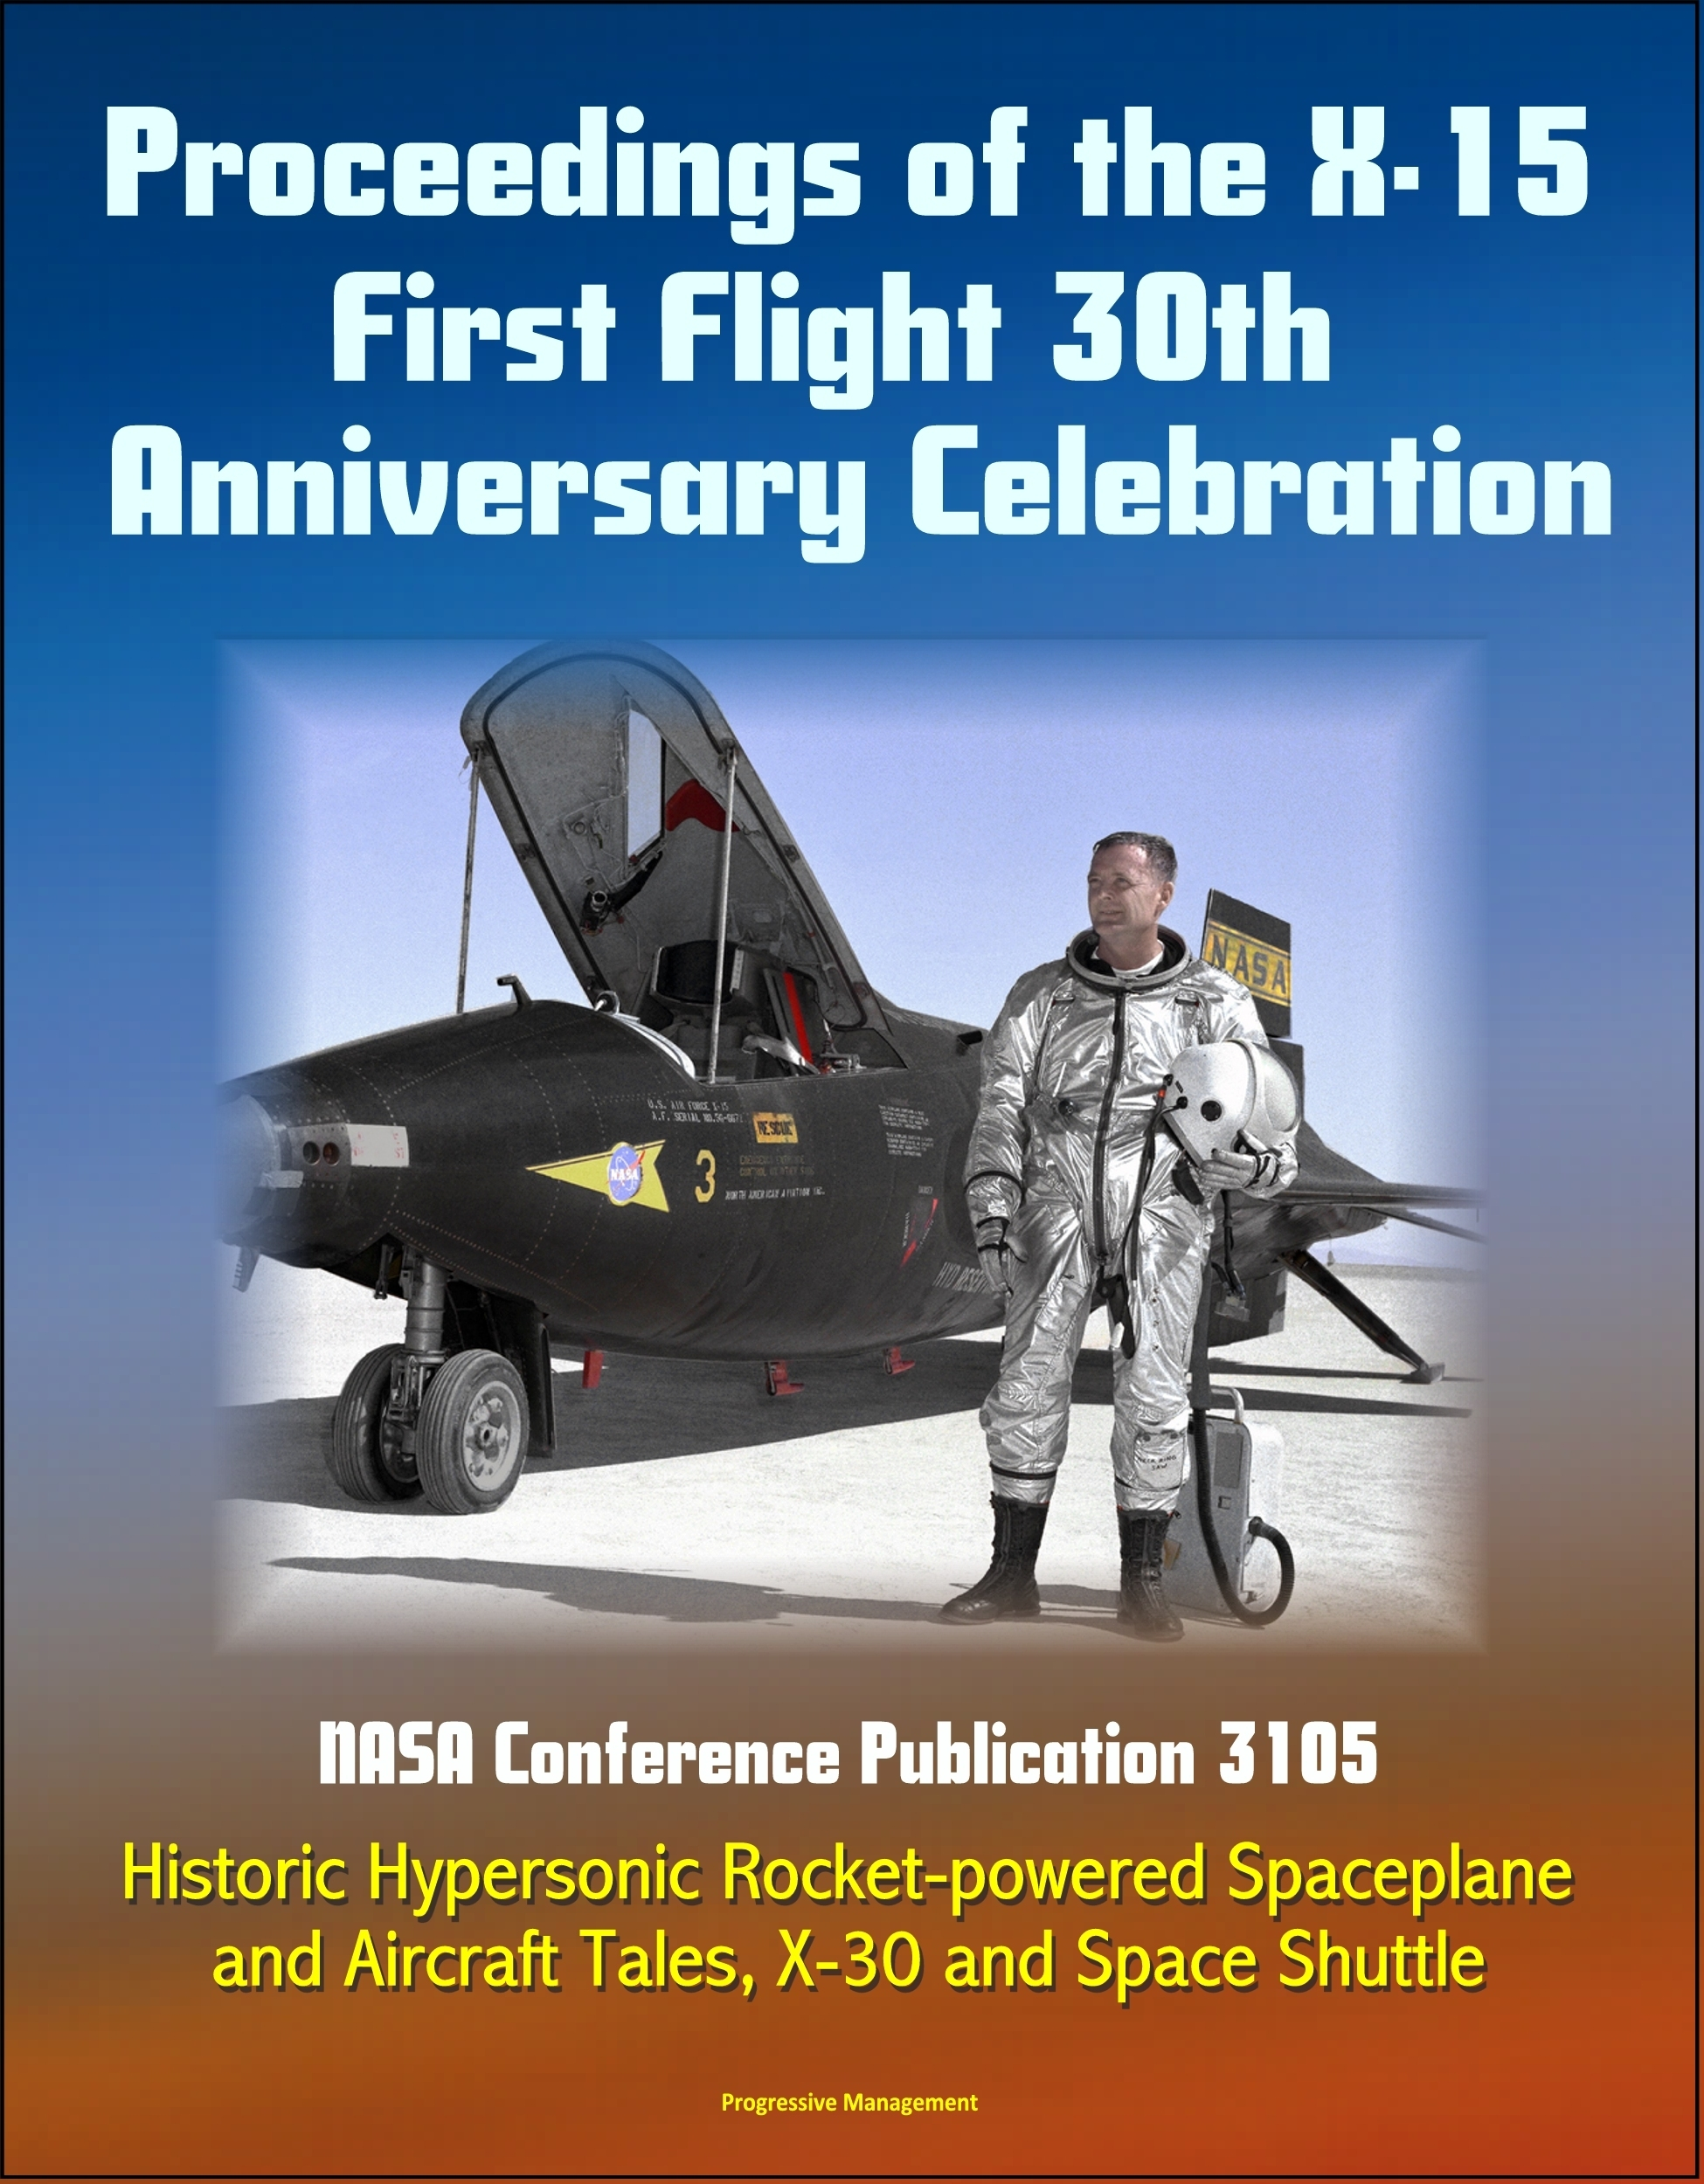 Proceedings of the X-15 First Flight 30th Anniversary Celebration: NASA Conference Publication 3105 - Historic Hypersonic Rocket-powered Spaceplane and Aircraft Tales, X-30 and Space Shuttle  by  Progressive Management